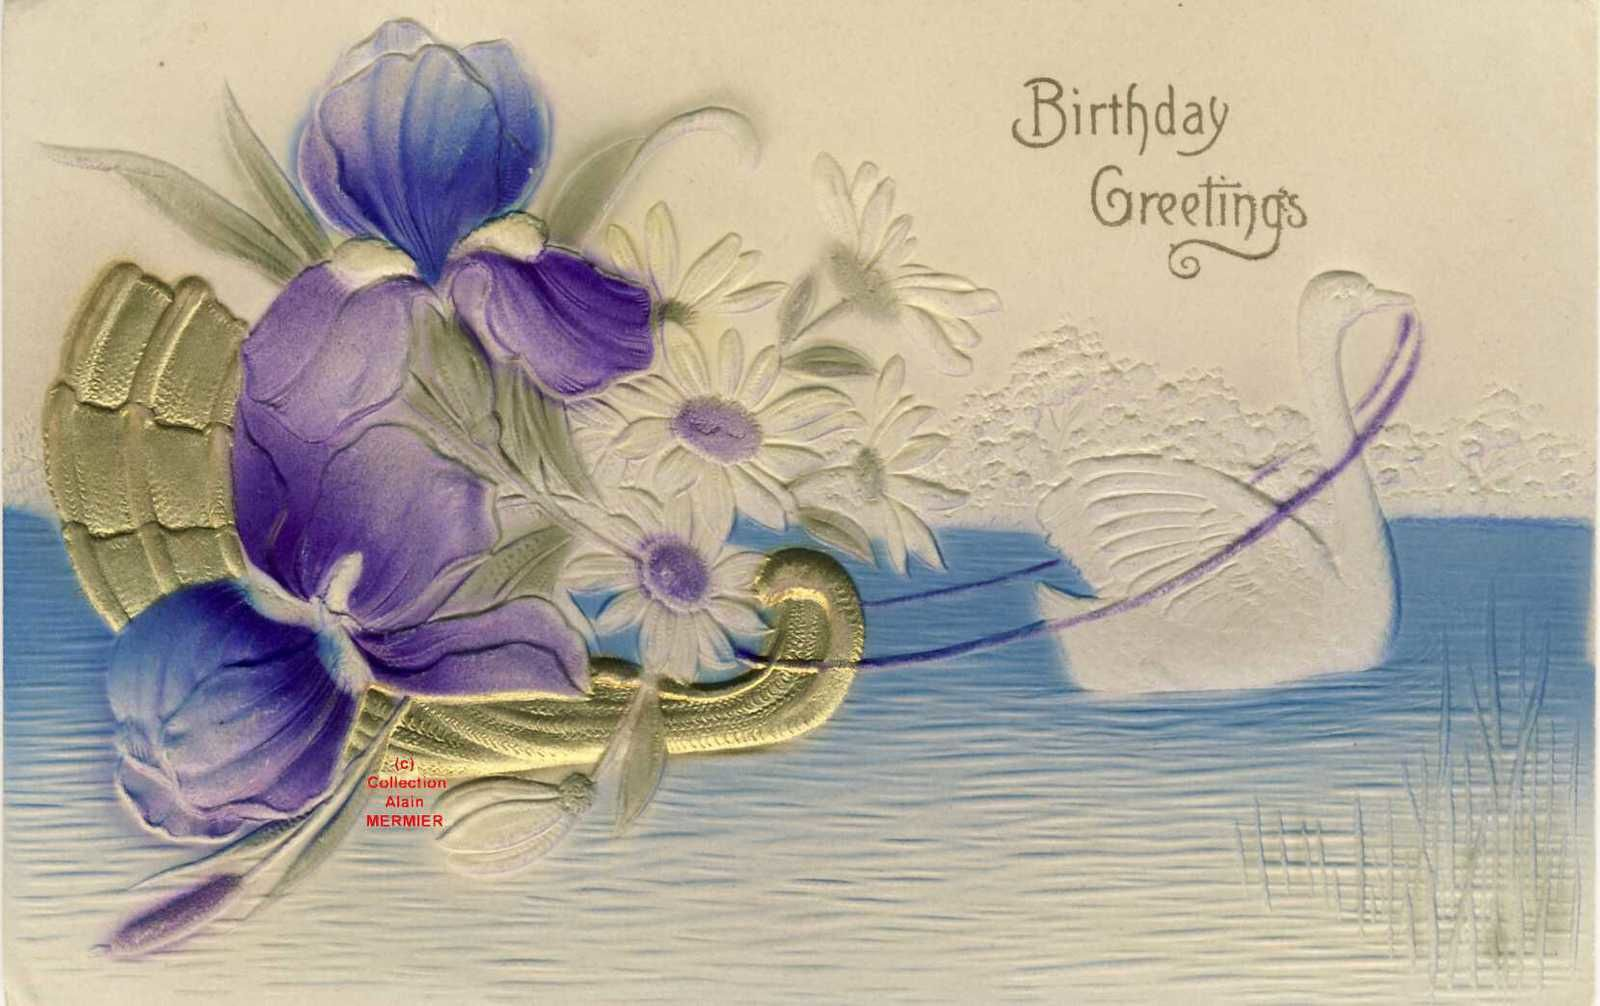 Iris -2100-Birthday greetings. Surgaufrée. Cygne tirant une barque. USA. 1910.